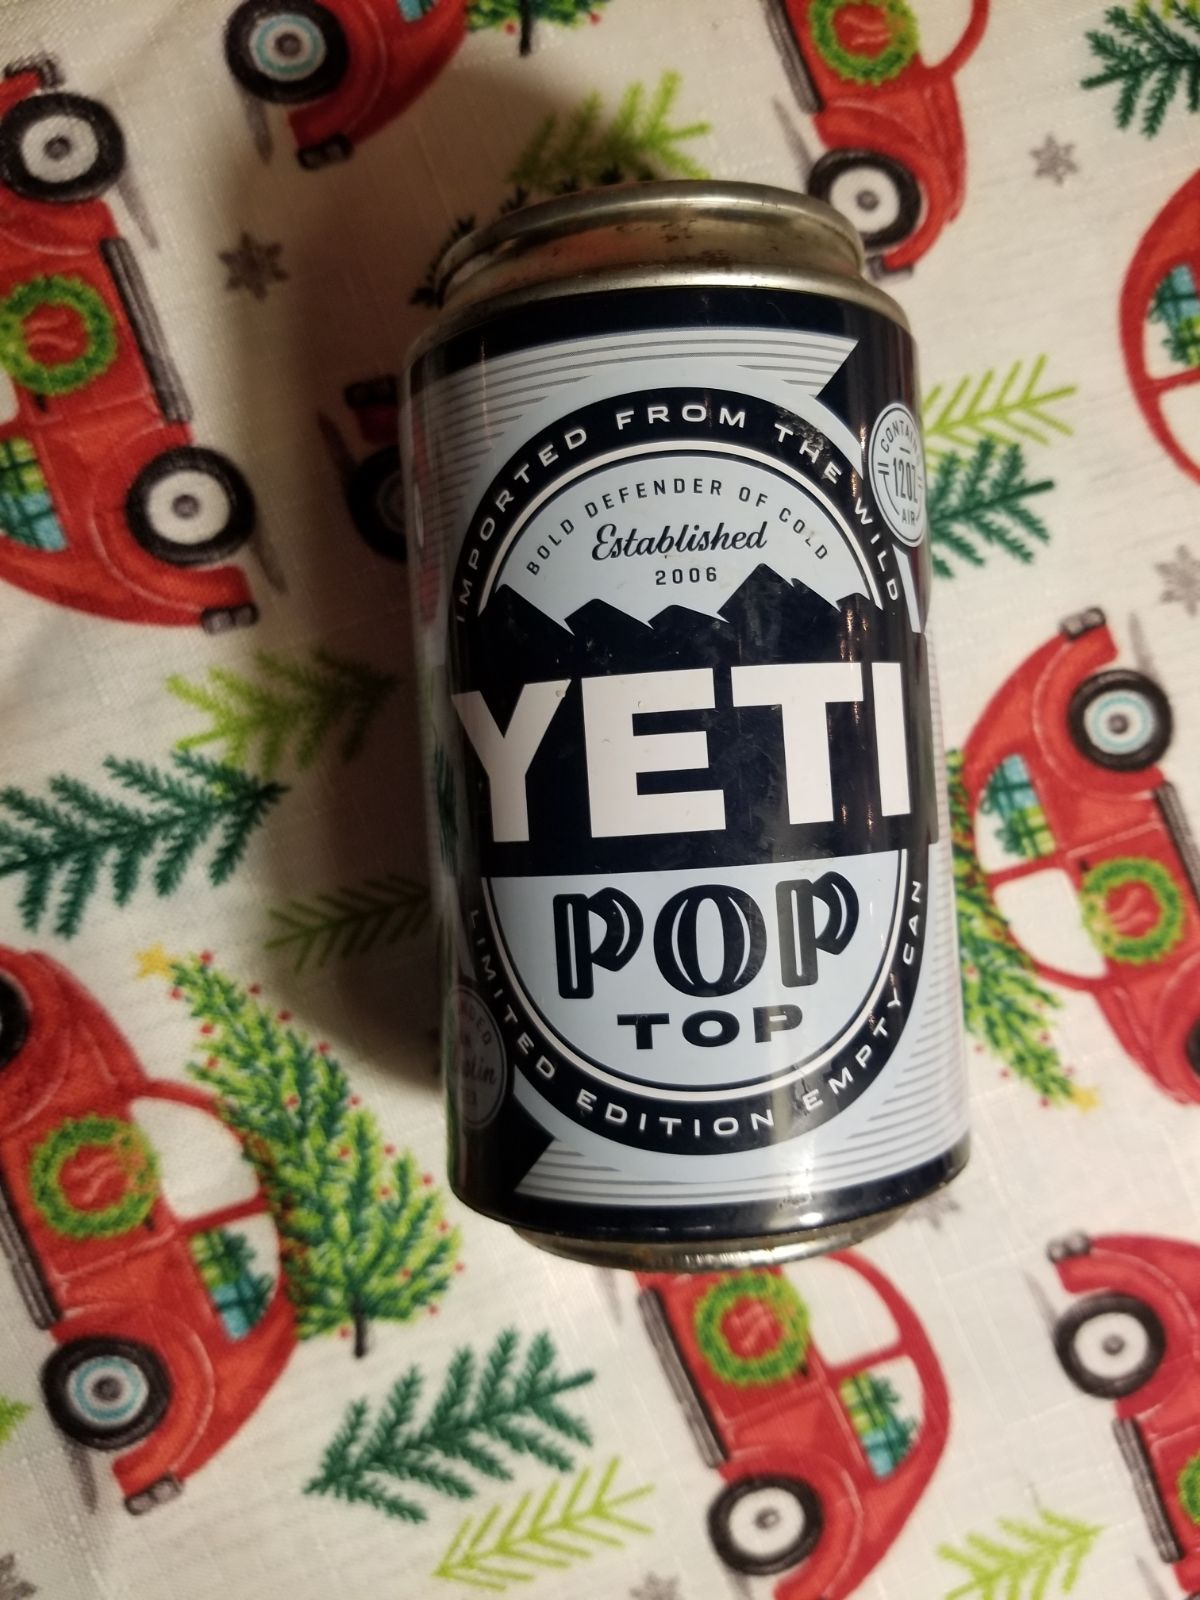 Yeti pop top limited edition empty can